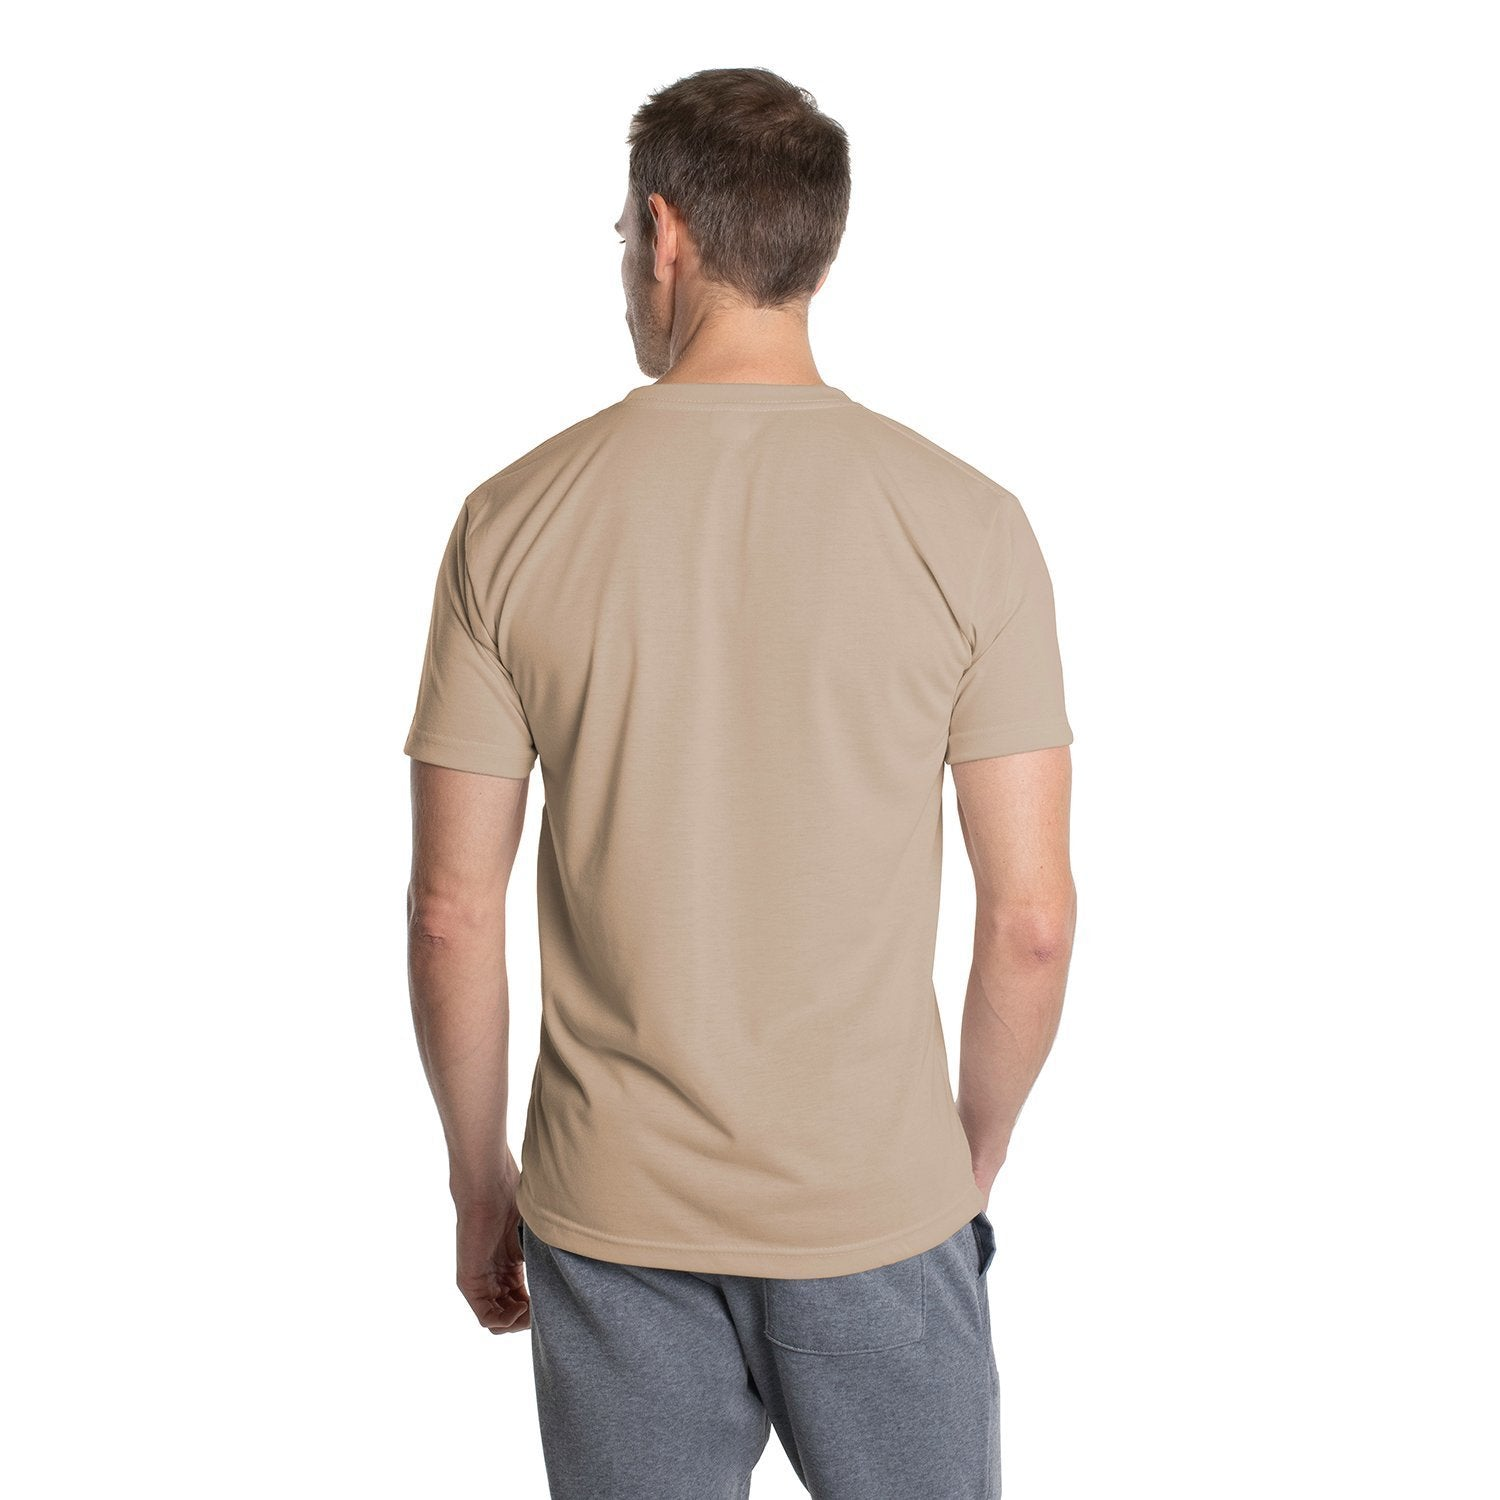 A1SJBBSD Basic Performance T-Shirt - Sand